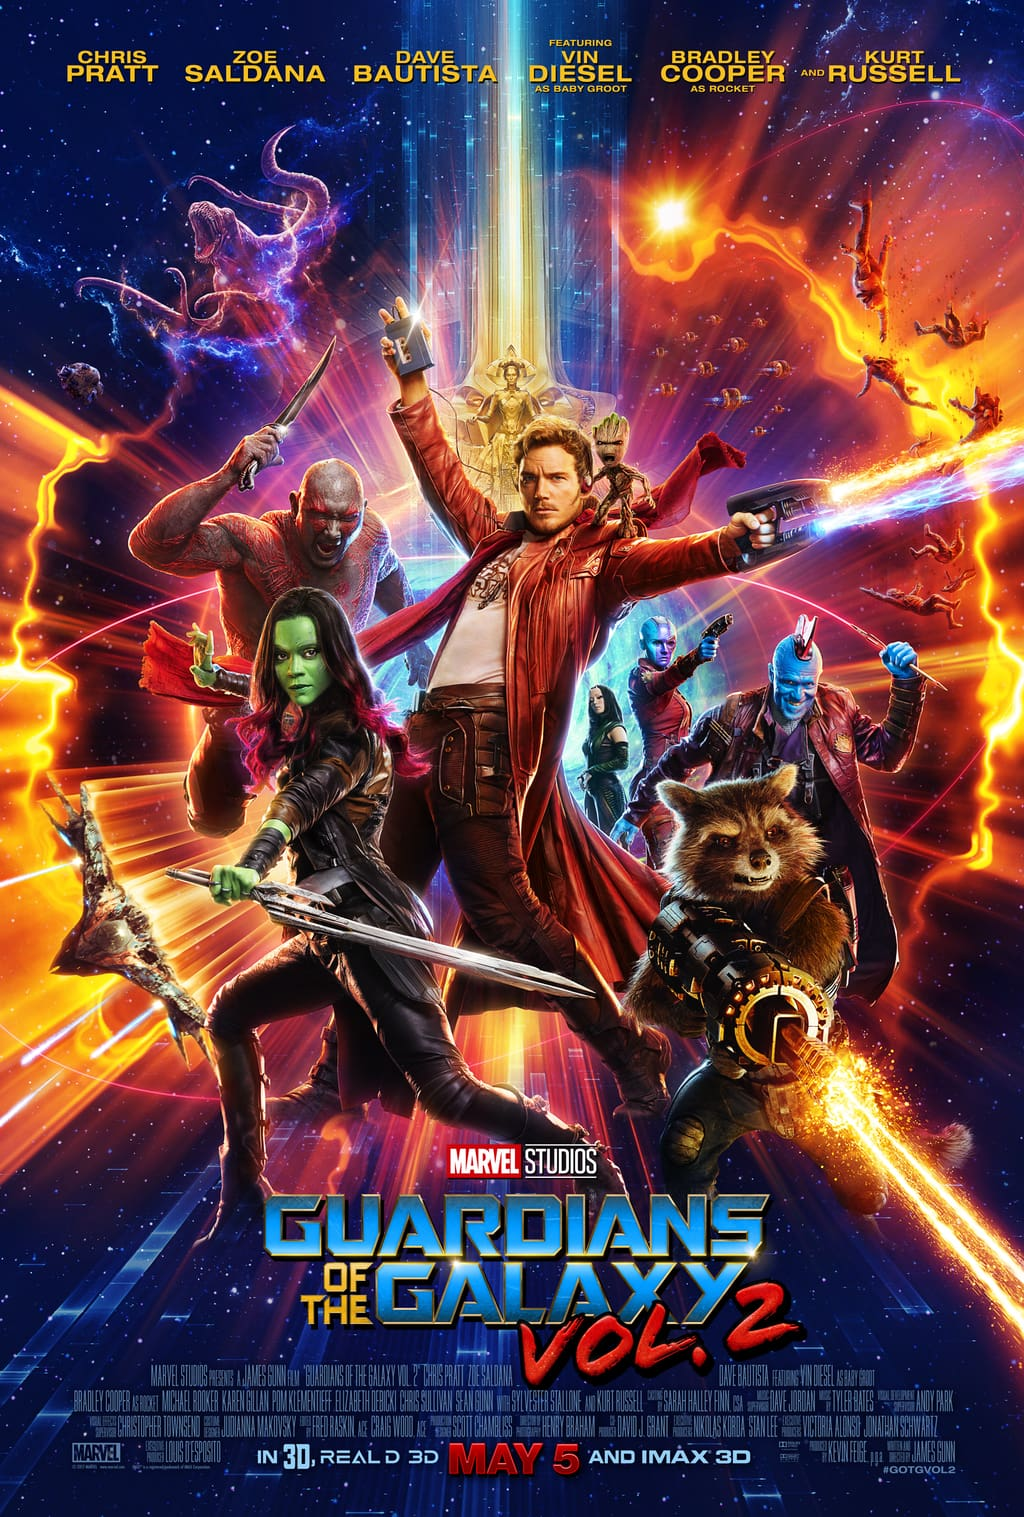 We're getting closer and closer to that May release date for Guardians of the Galaxy Vol 2, and I'm getting more and more excited!